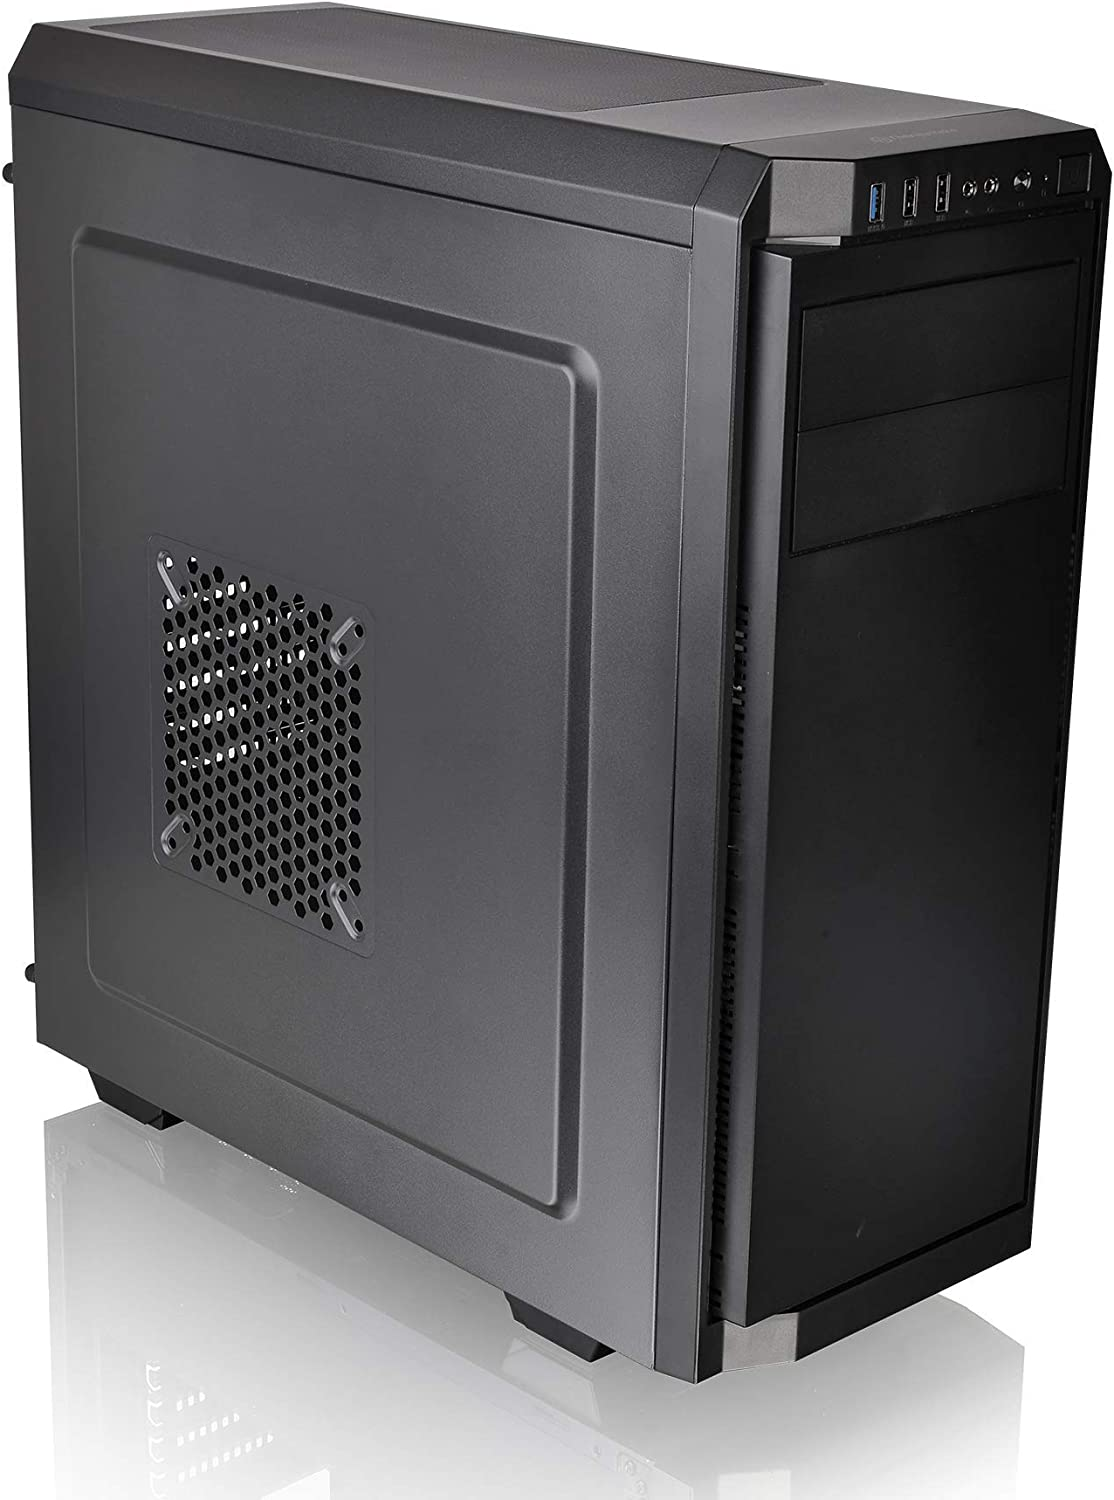 Thermaltake V100A Black ATX Mid Tower Perforated Metal Side and Top Panel Gaming Computer Case with One 120mm Rear Fan Pre-Installed CA-1K7-00M1NN-A0